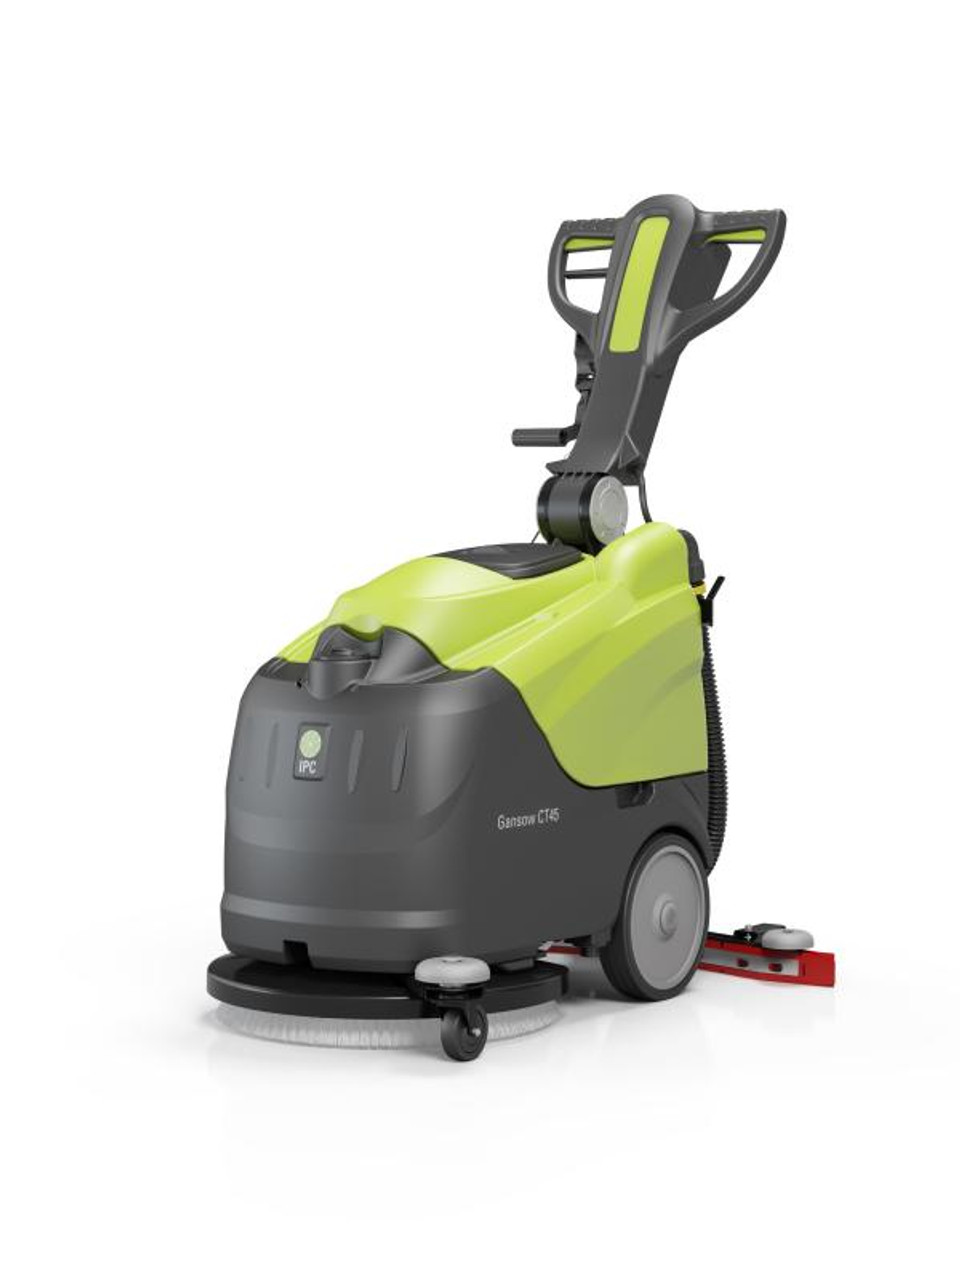 Ergonomic design and and adjustable height handle cut down on operator fatigue.